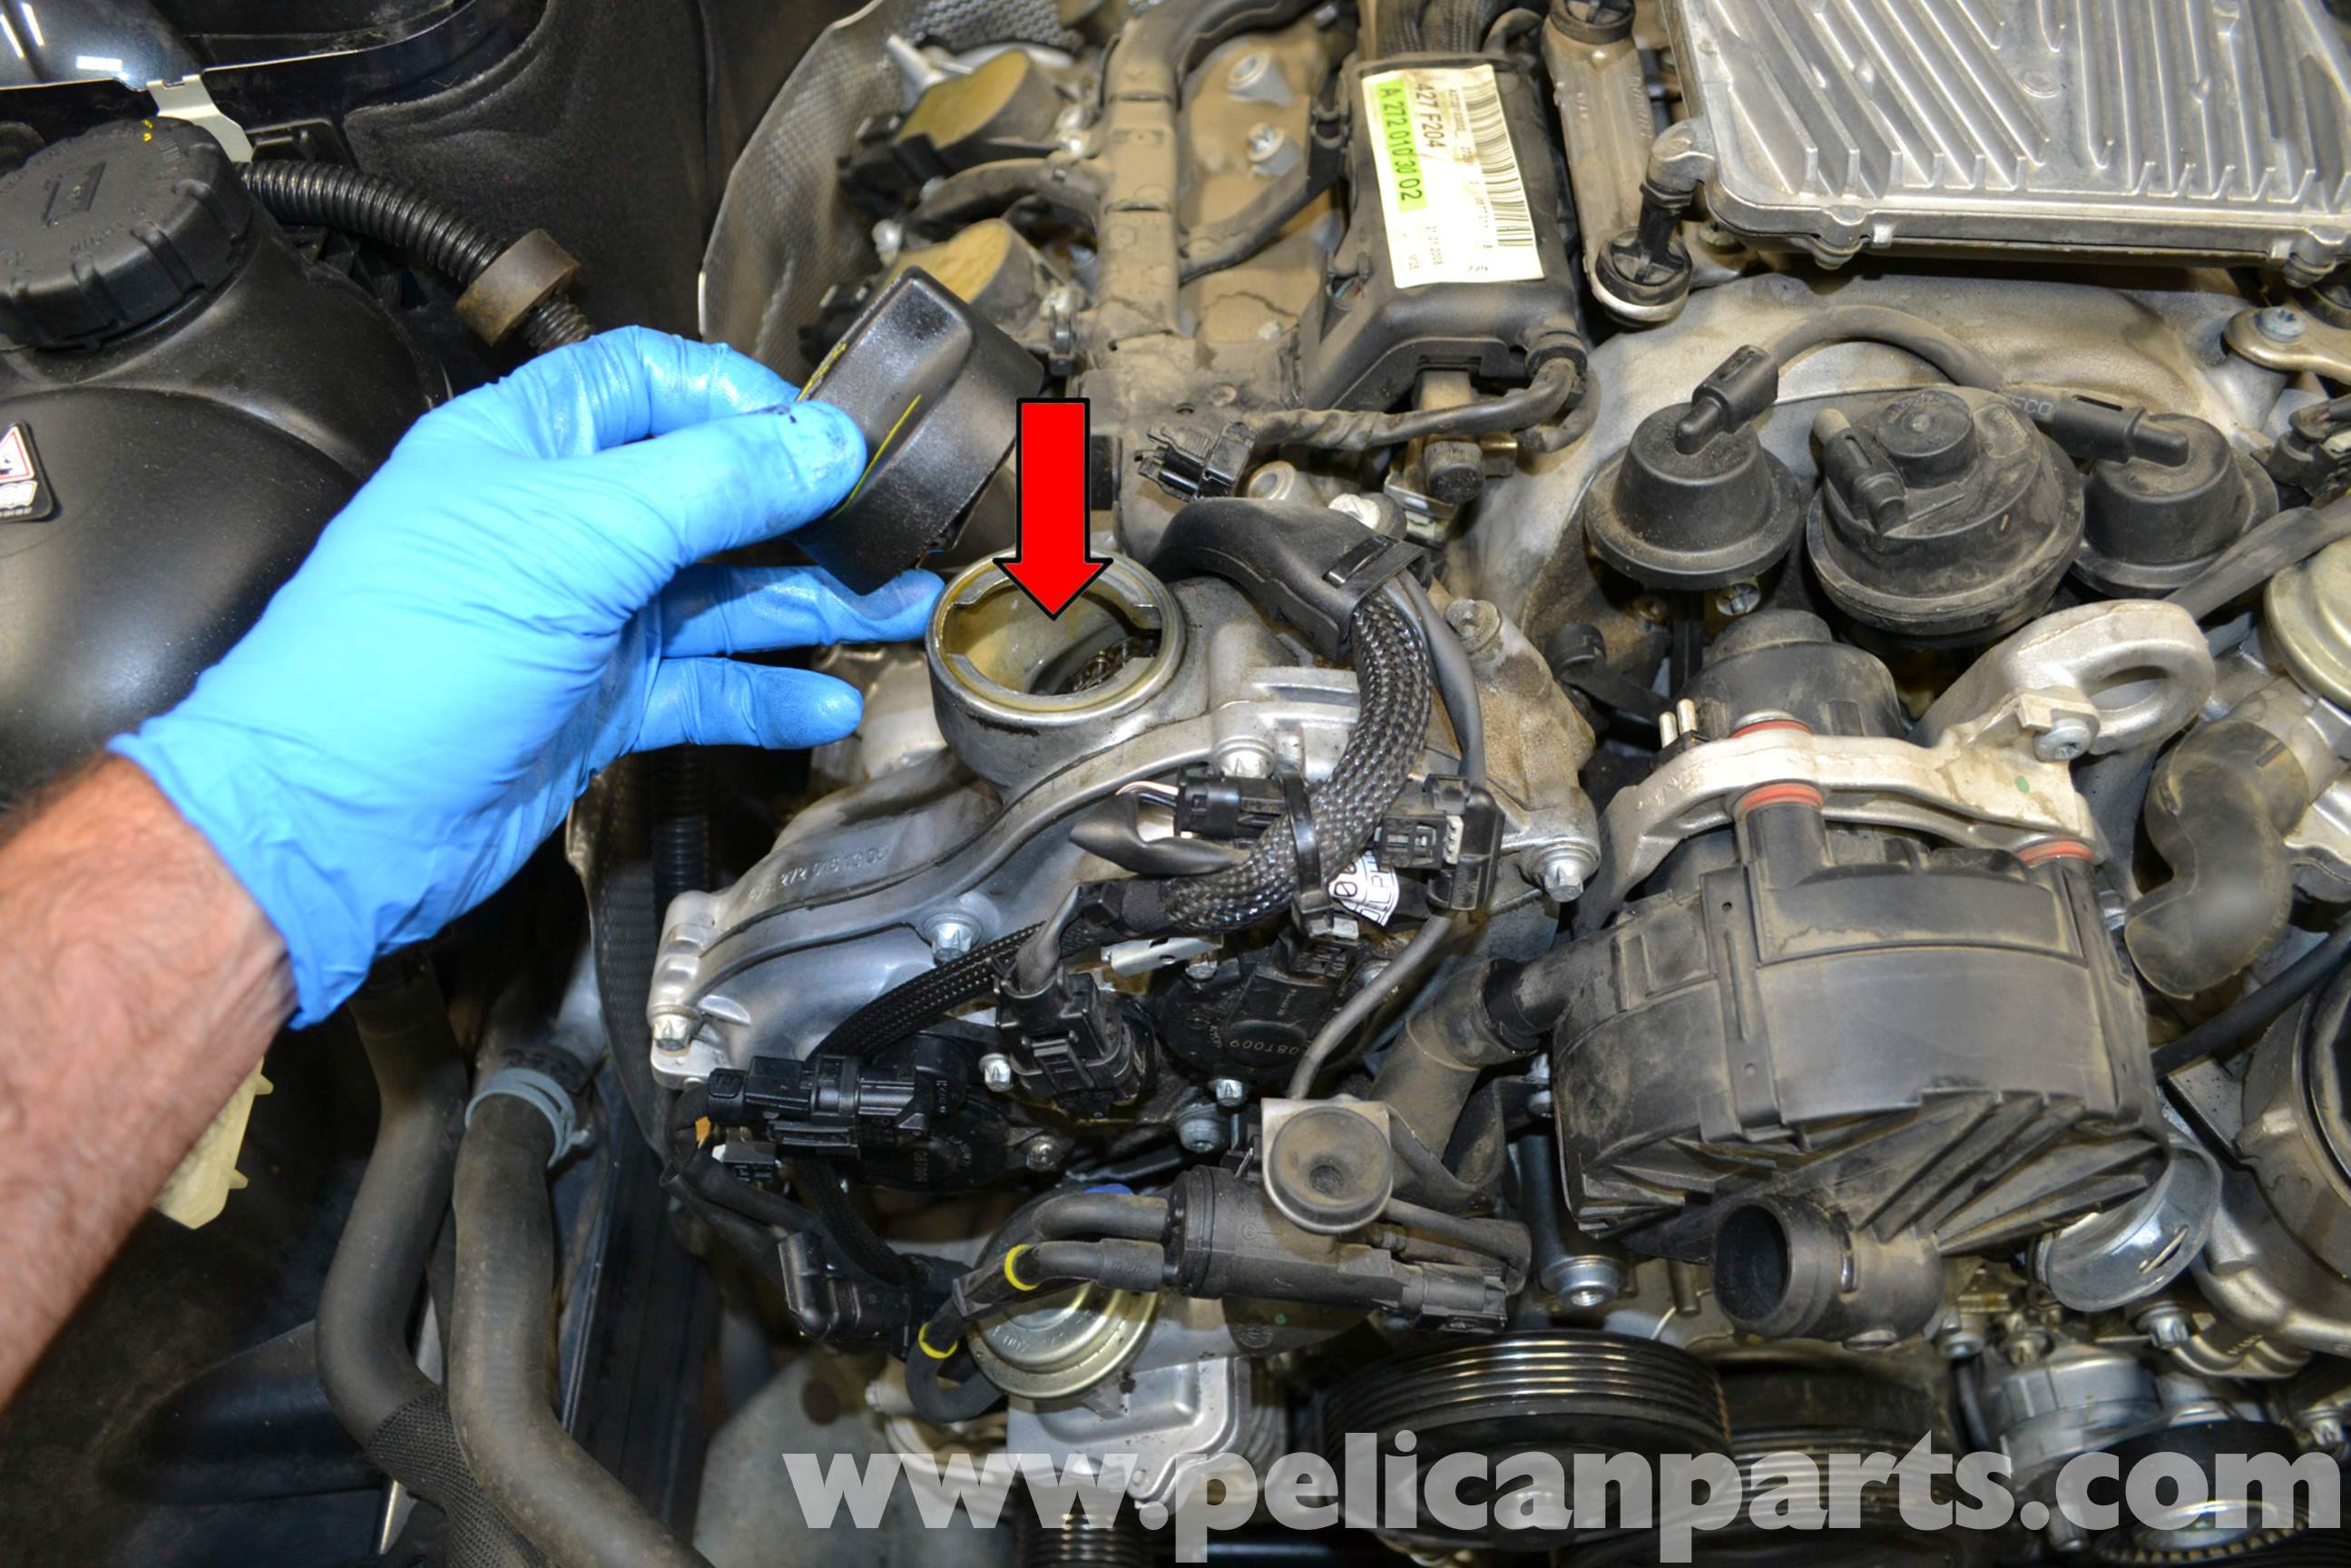 Mercedes benz w204 oil change 2008 2014 c250 c300 c350 pelican parts diy maintenance article